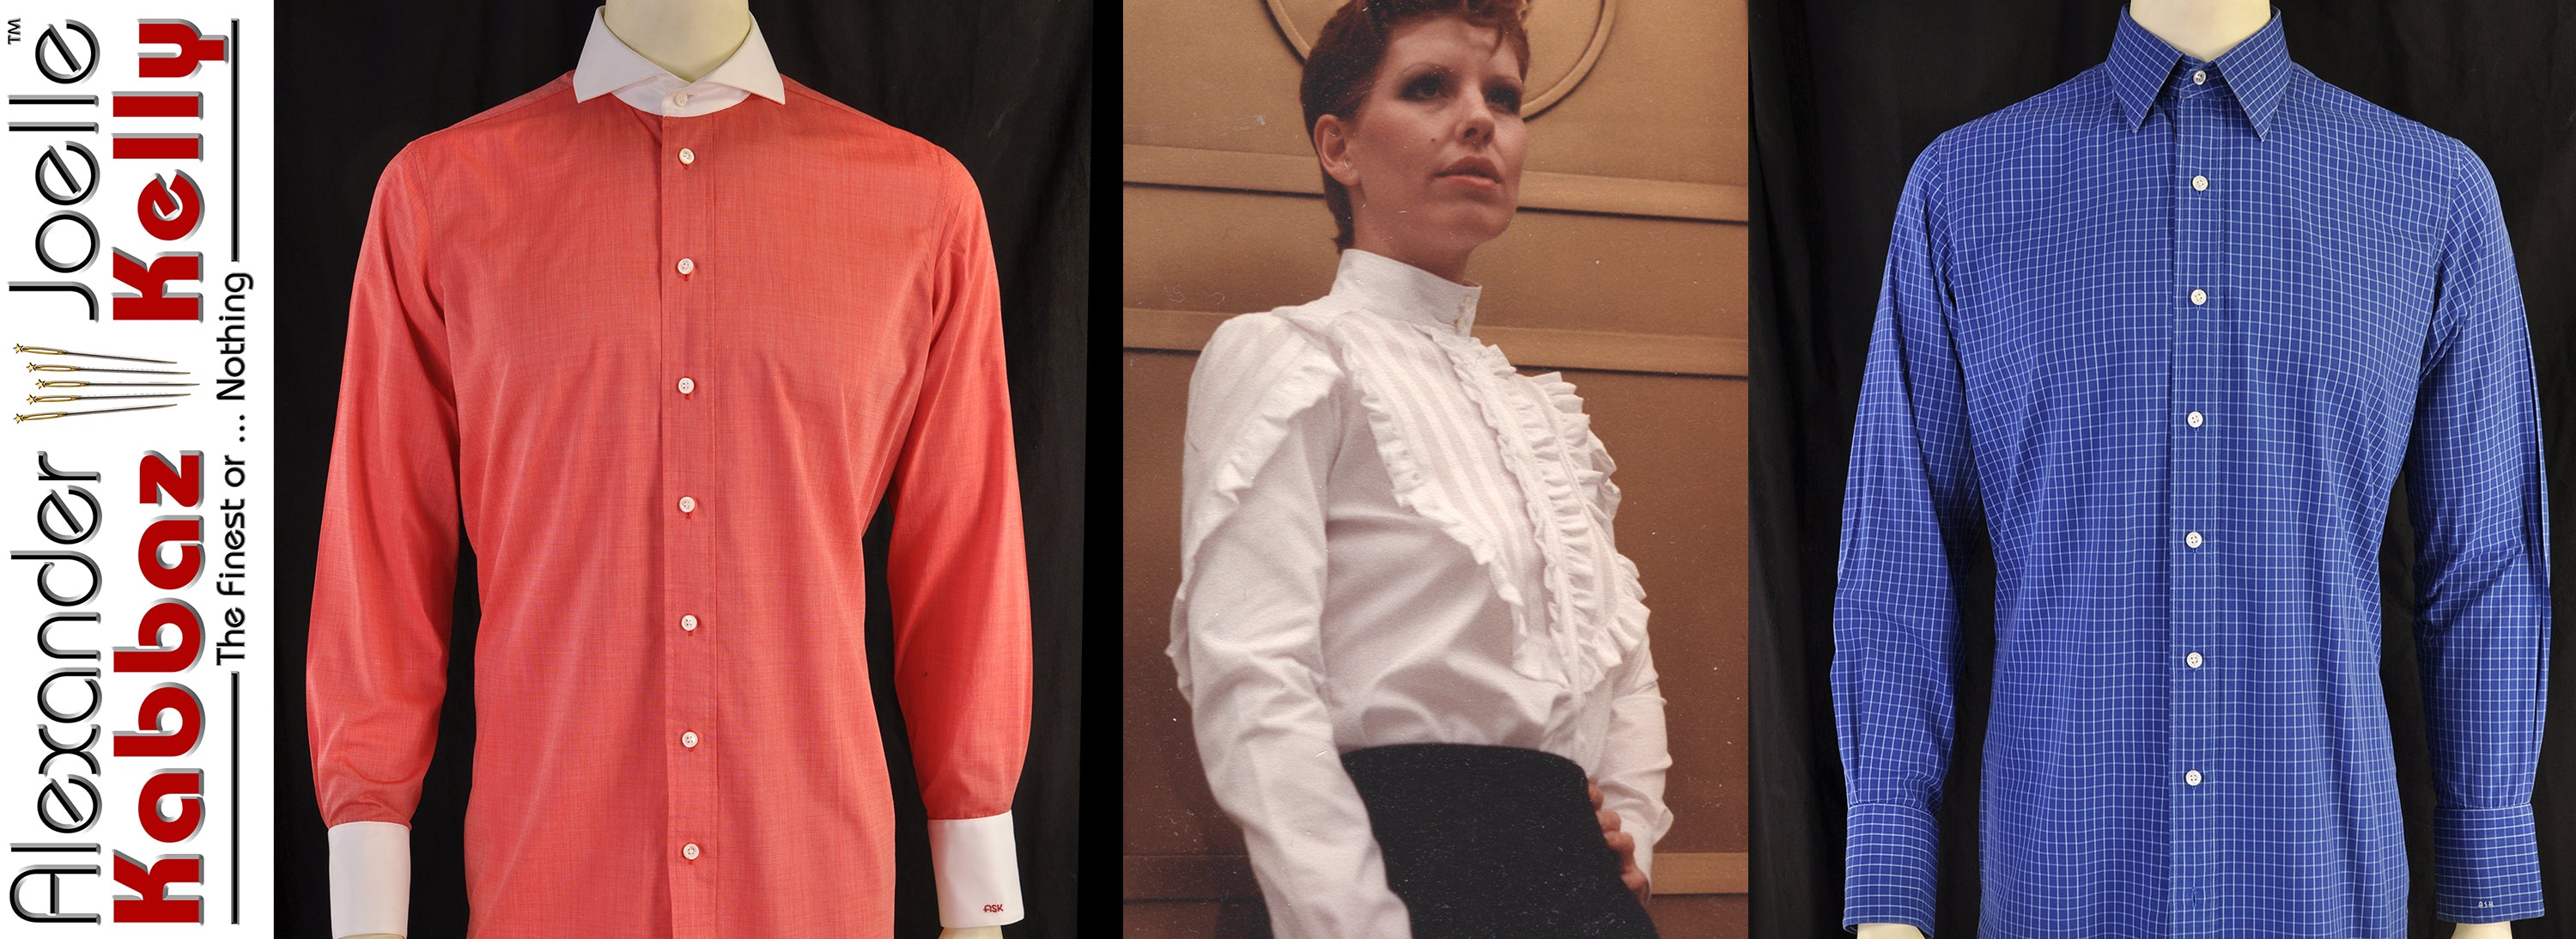 Bespoke Shirts and Blouses by Alexander Kabbaz-Joelle Kelly & Sons